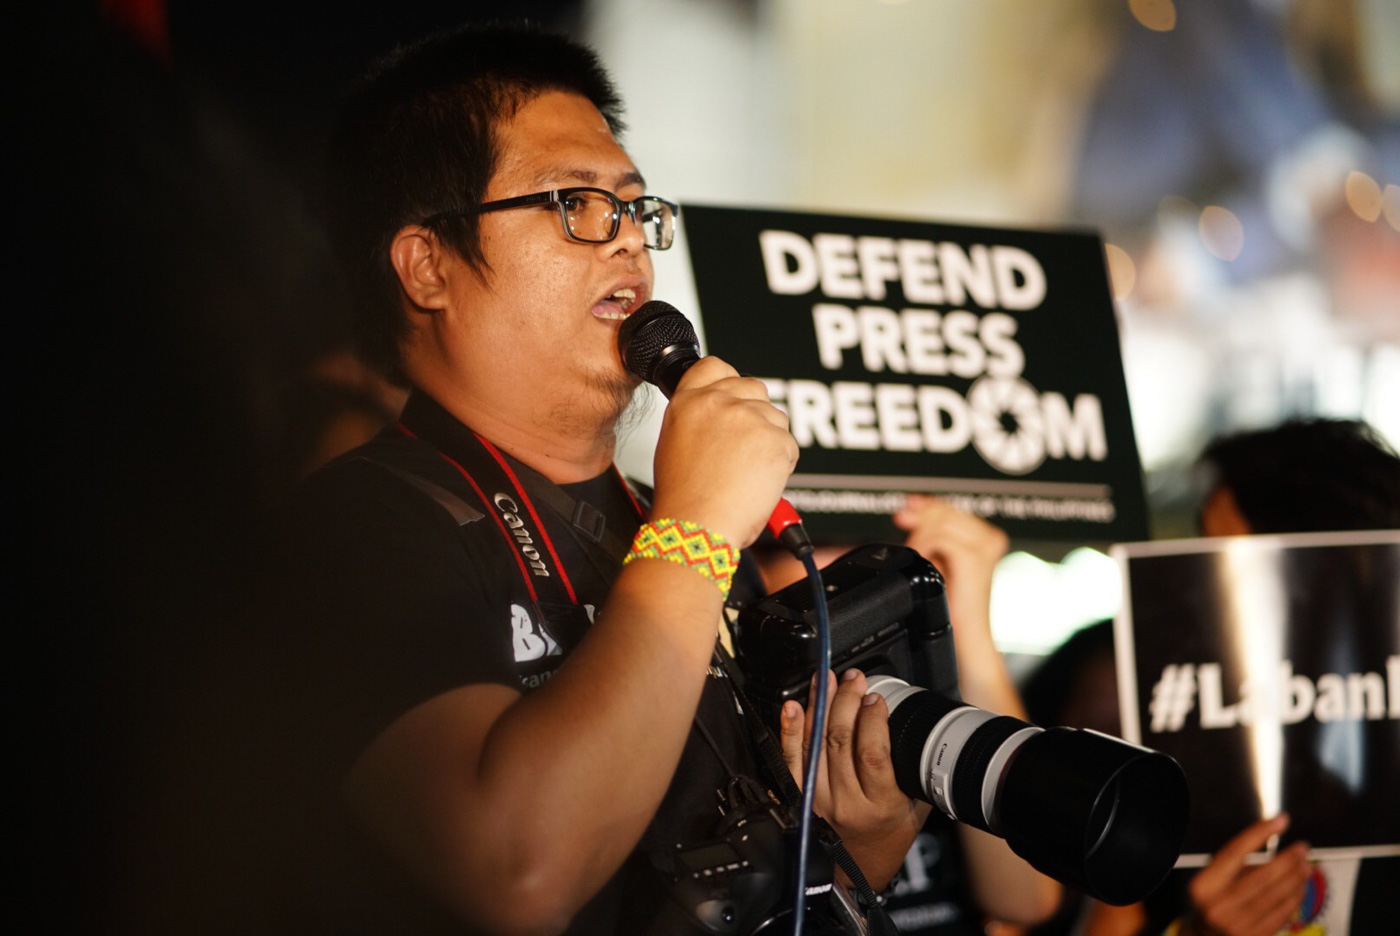 SOLIDARITY. Photographer Mark Saludes of the Photojournalist Center of the Philippines manifests the group's solidarity with members of the press in the fight for press freedom. Photo by Martin San Diego/Rappler